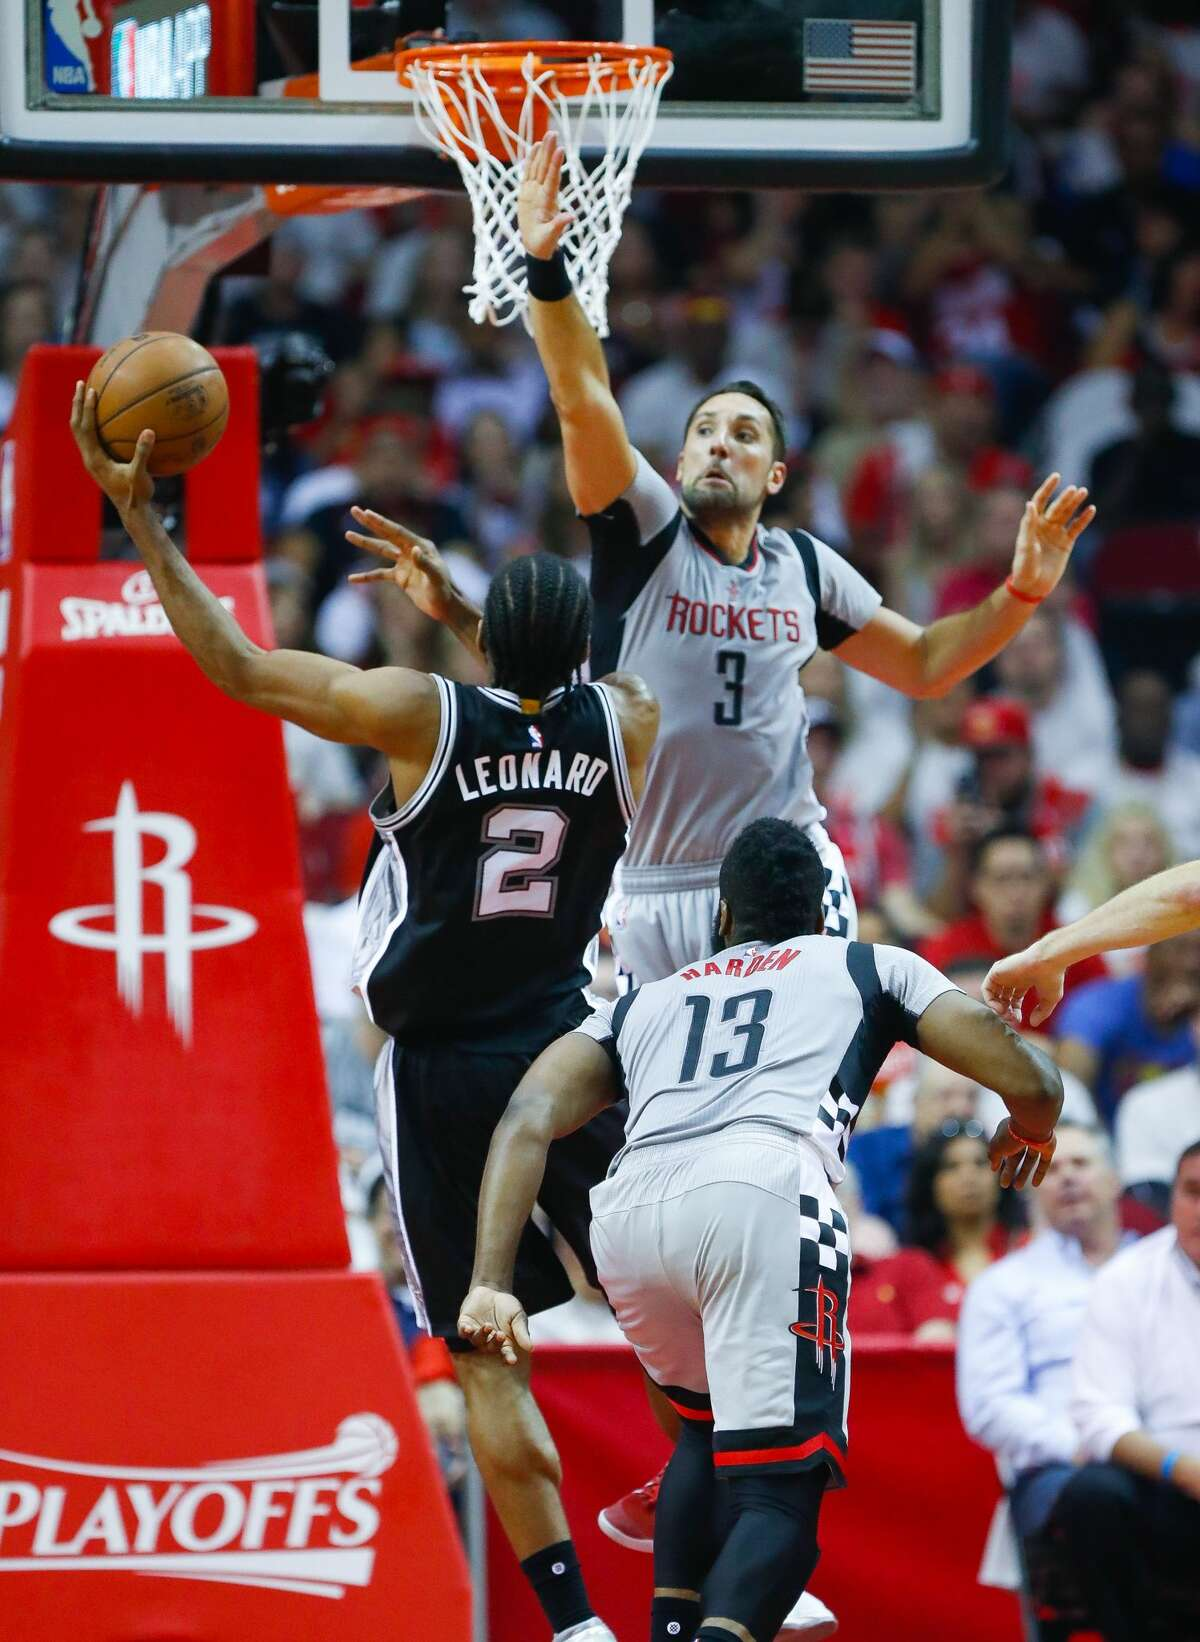 Houston Rockets forward Ryan Anderson (3) tries to stop a San Antonio Spurs forward Kawhi Leonard (2) shot during the first half of Game 3 of the second round of the Western Conference NBA playoffs at the Toyota Center, Sunday, May 7, 2017, in Houston. ( Karen Warren / Houston Chronicle )